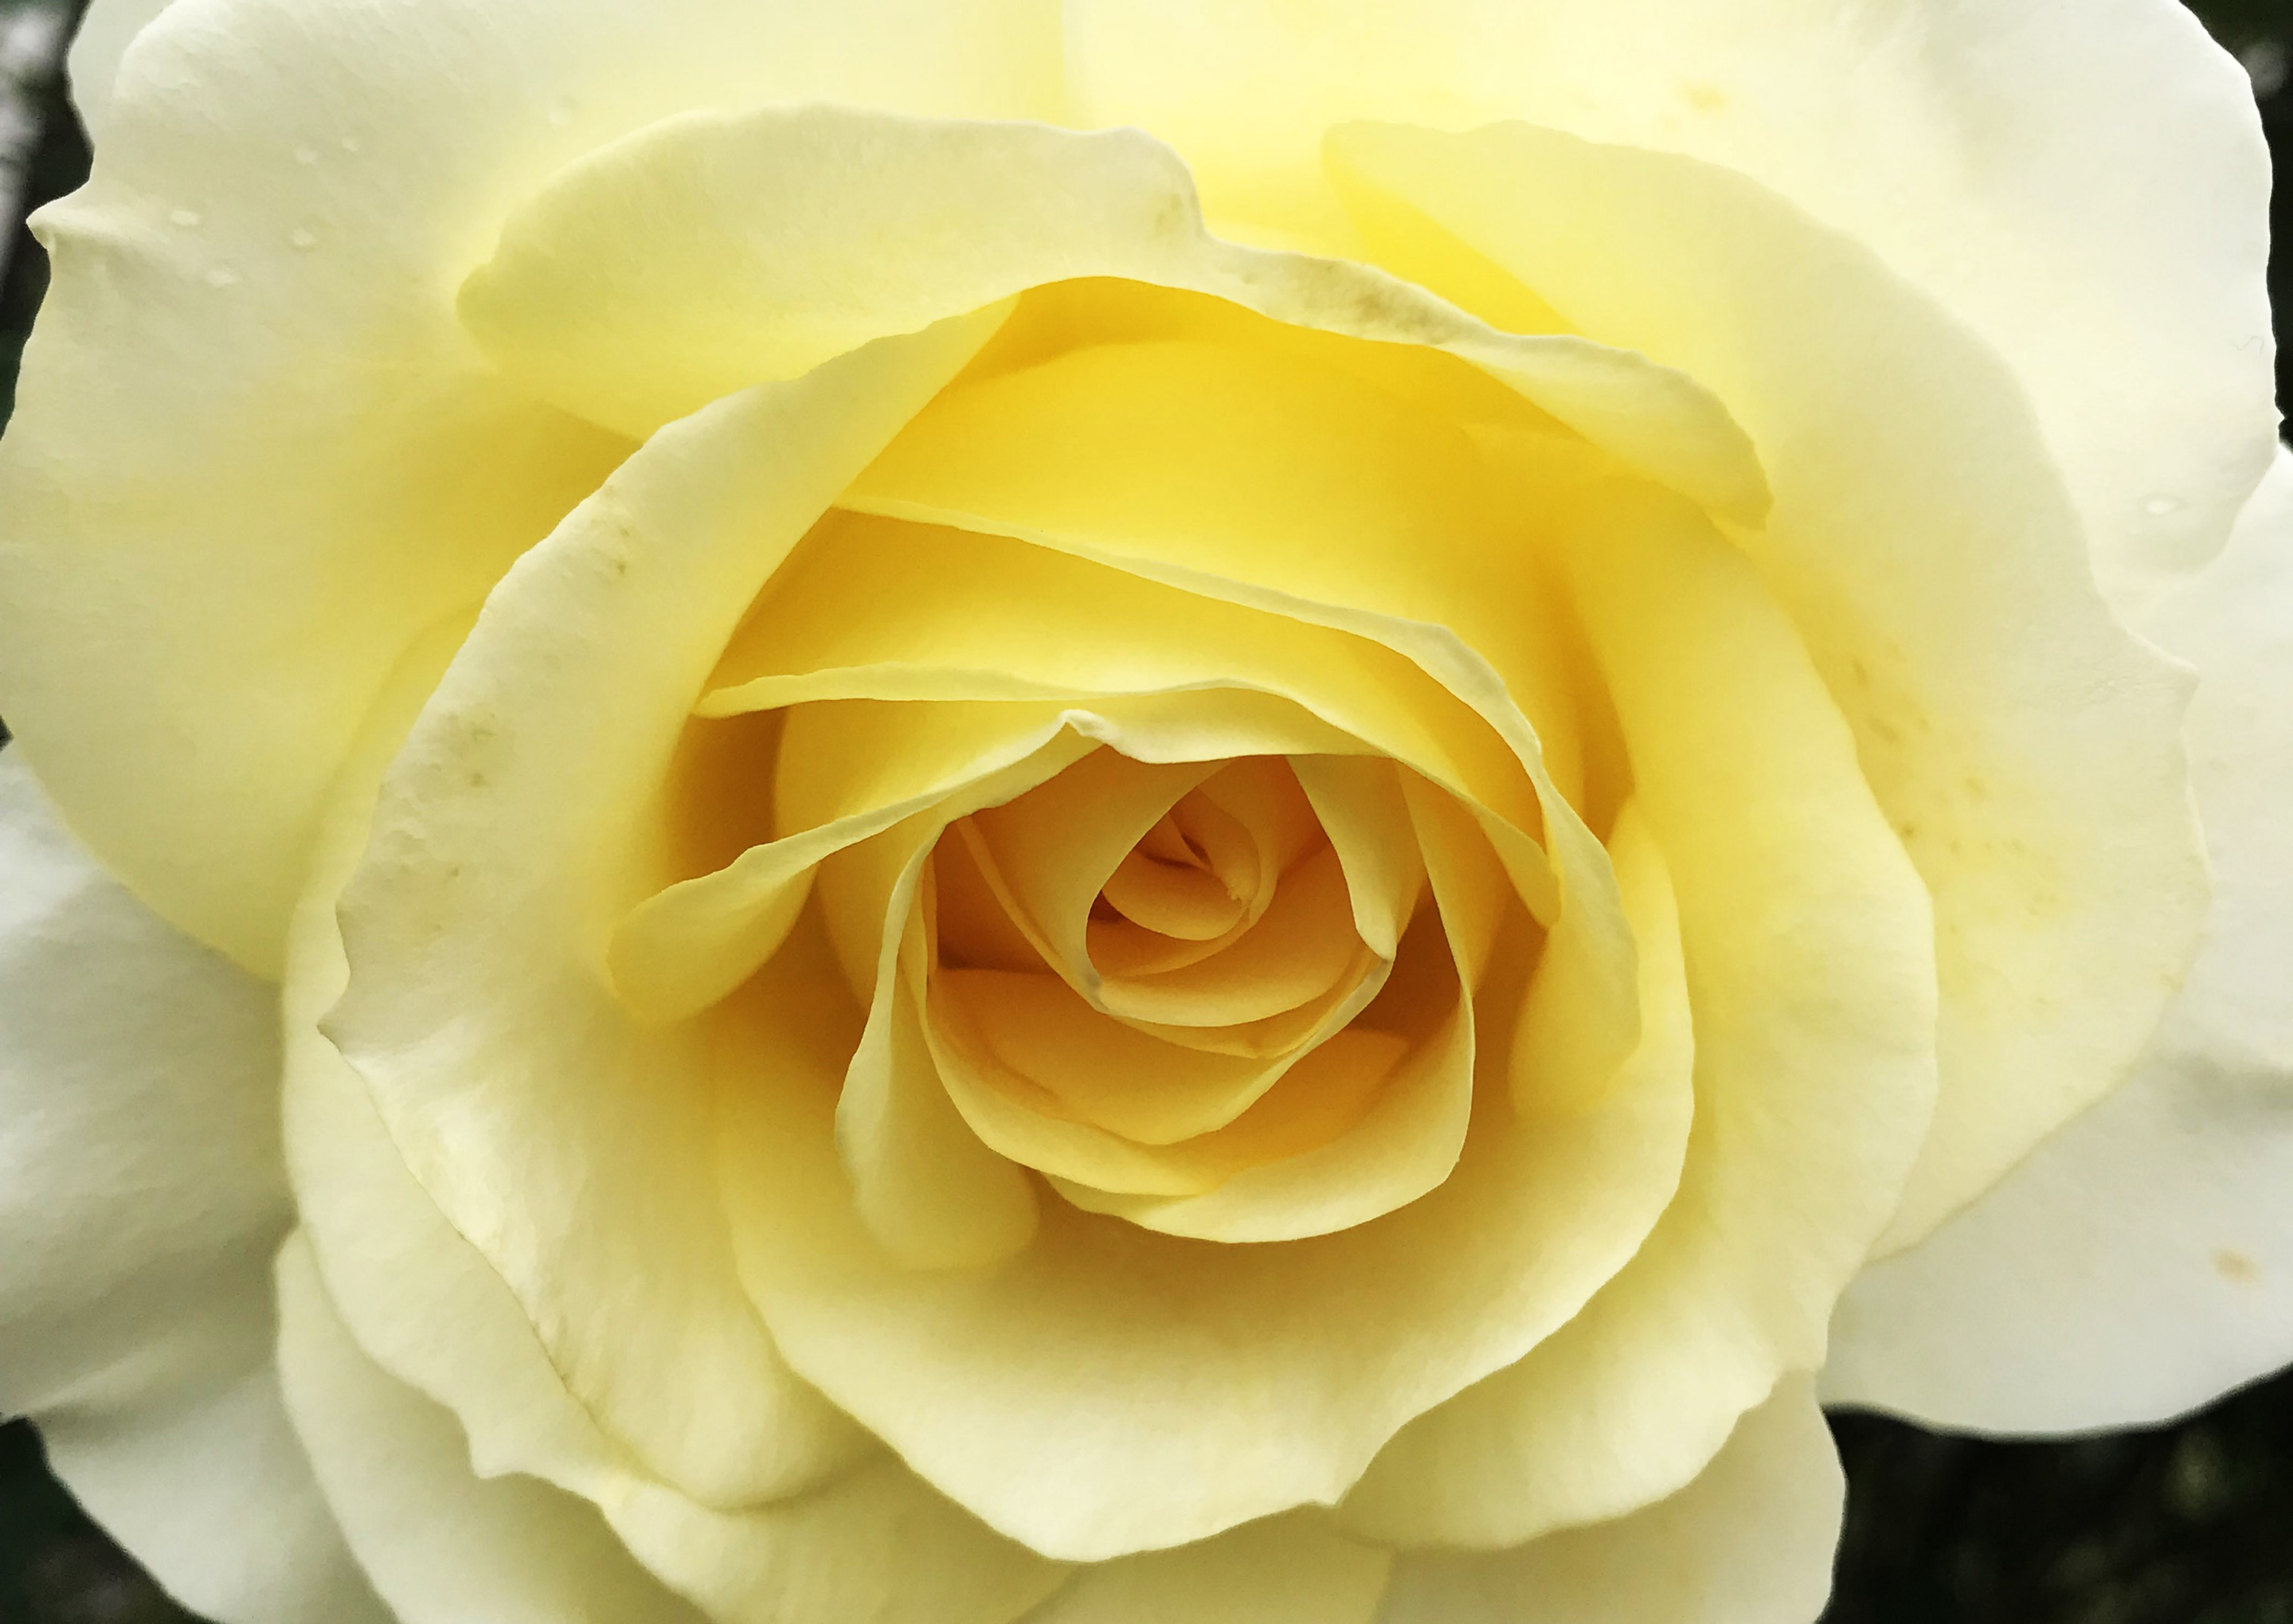 photo of a yellow rose